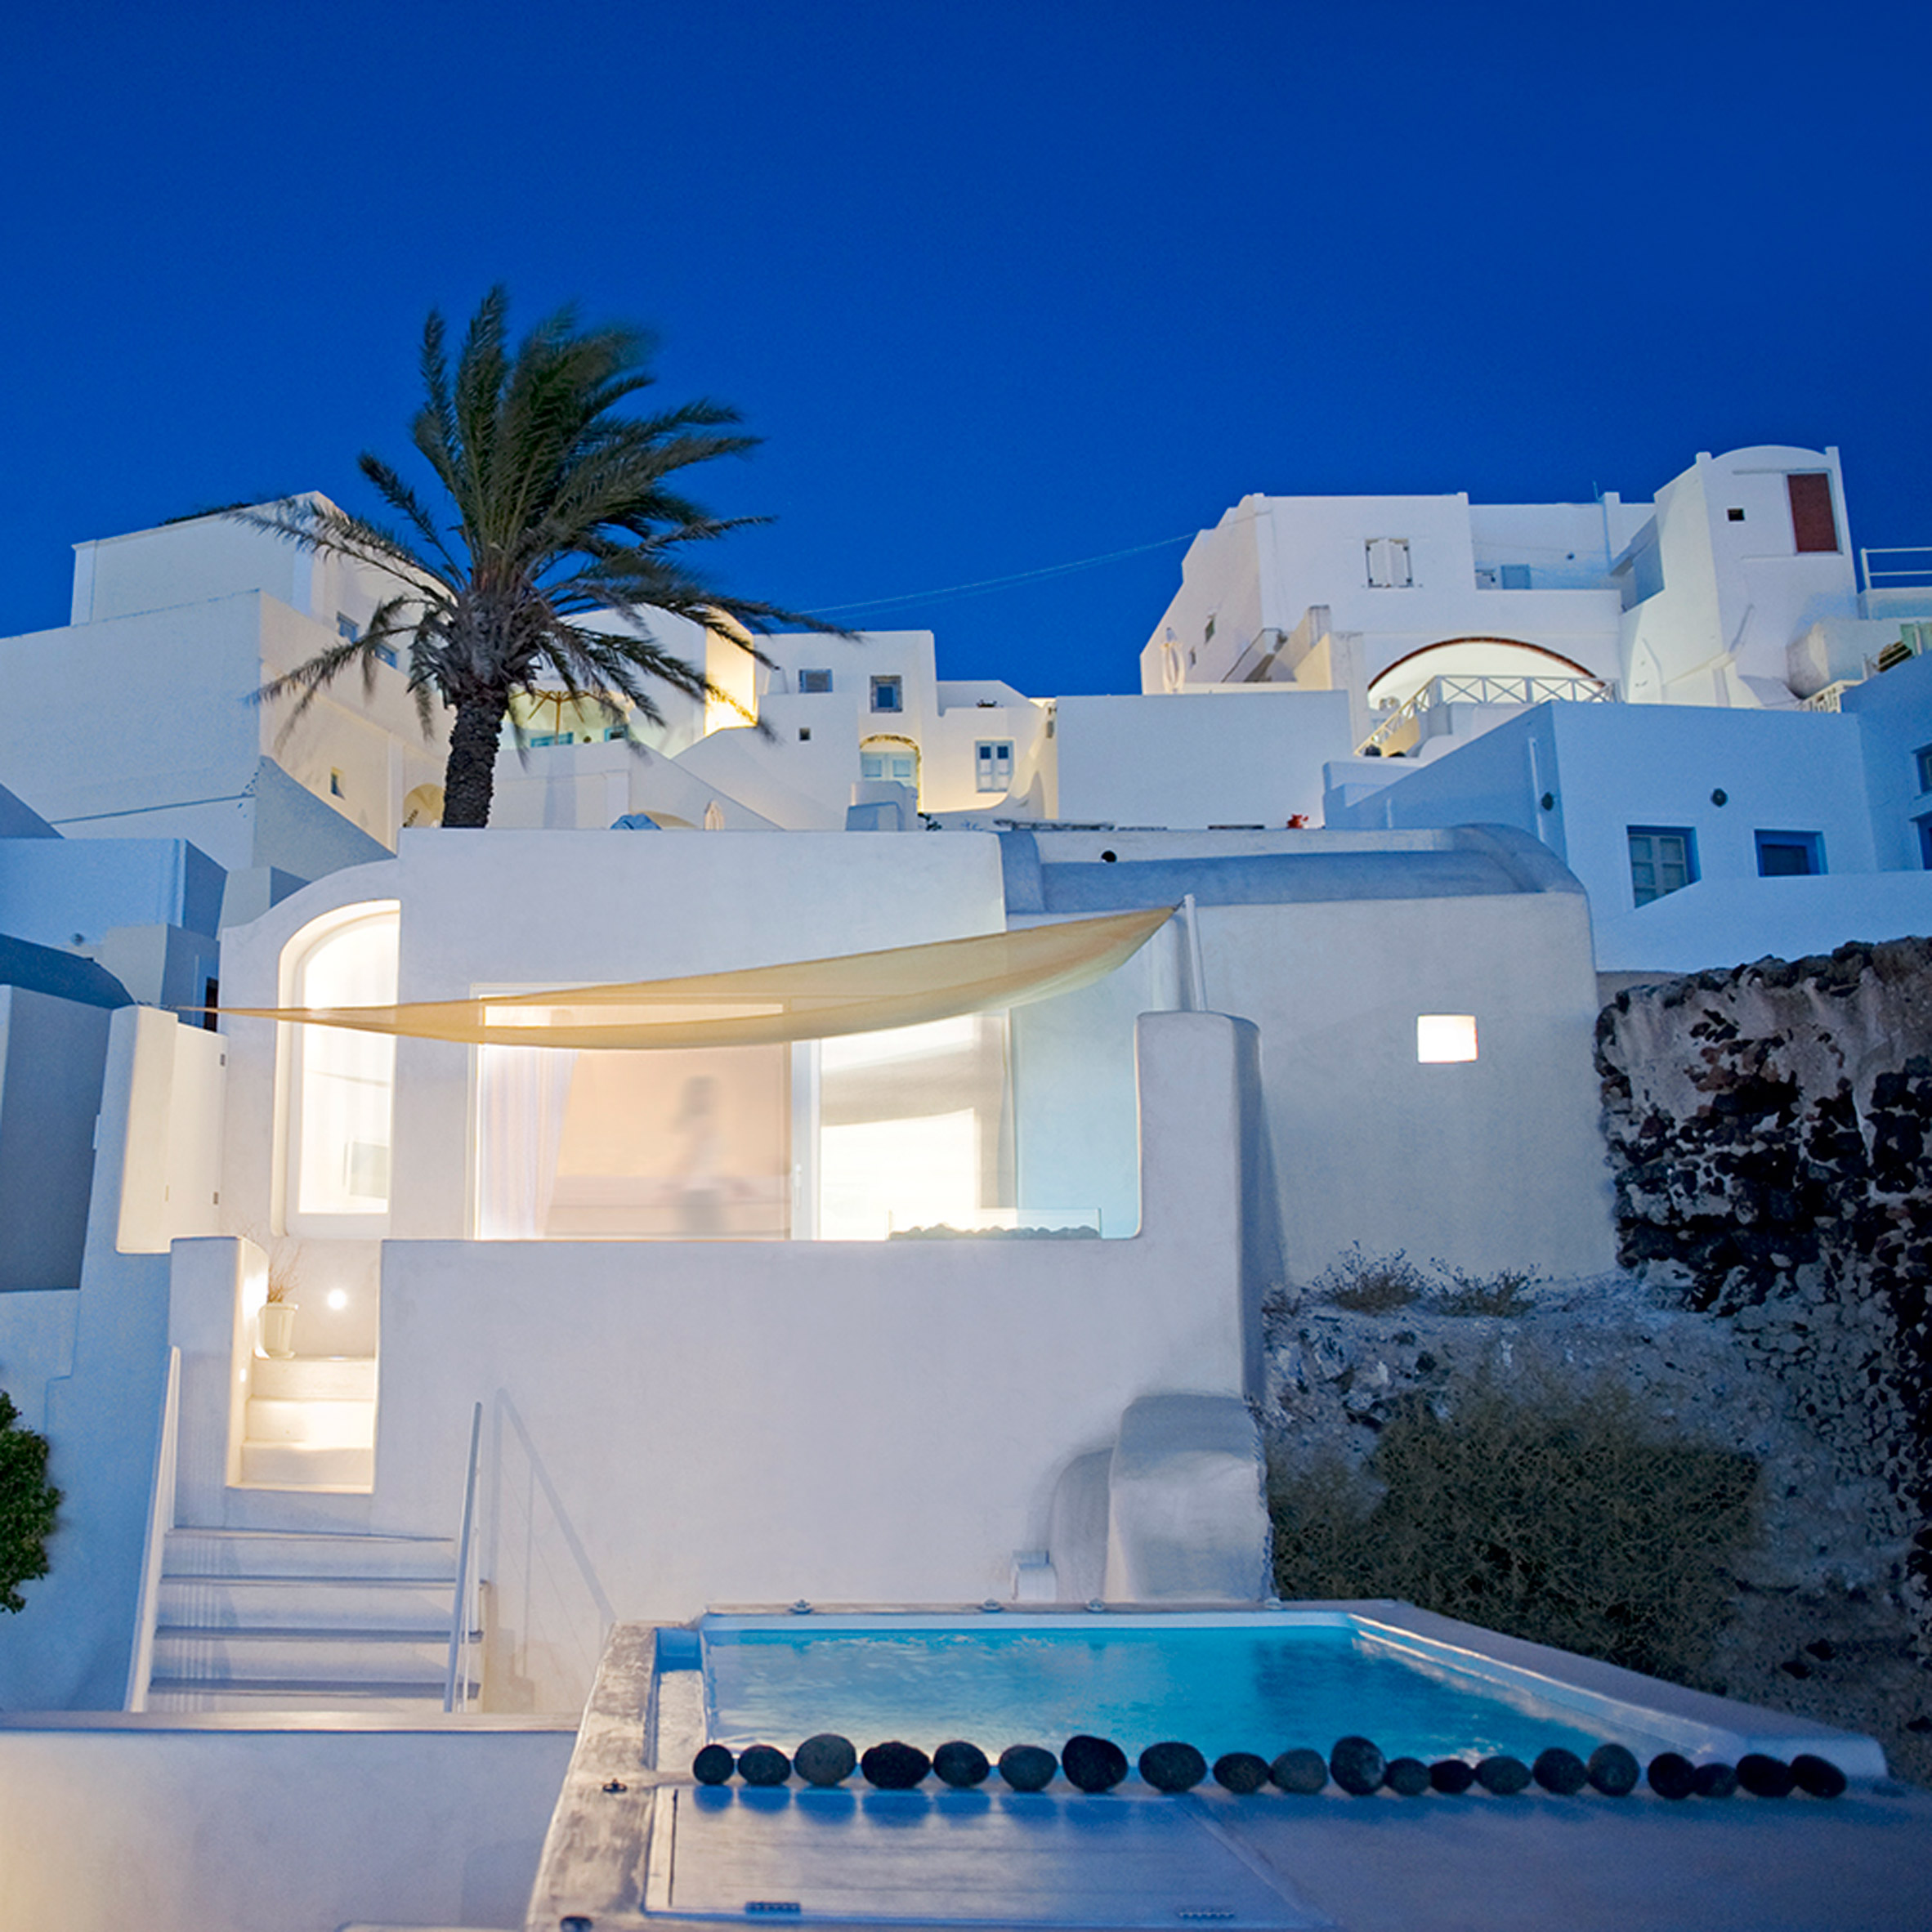 Holiday home in Greece 3